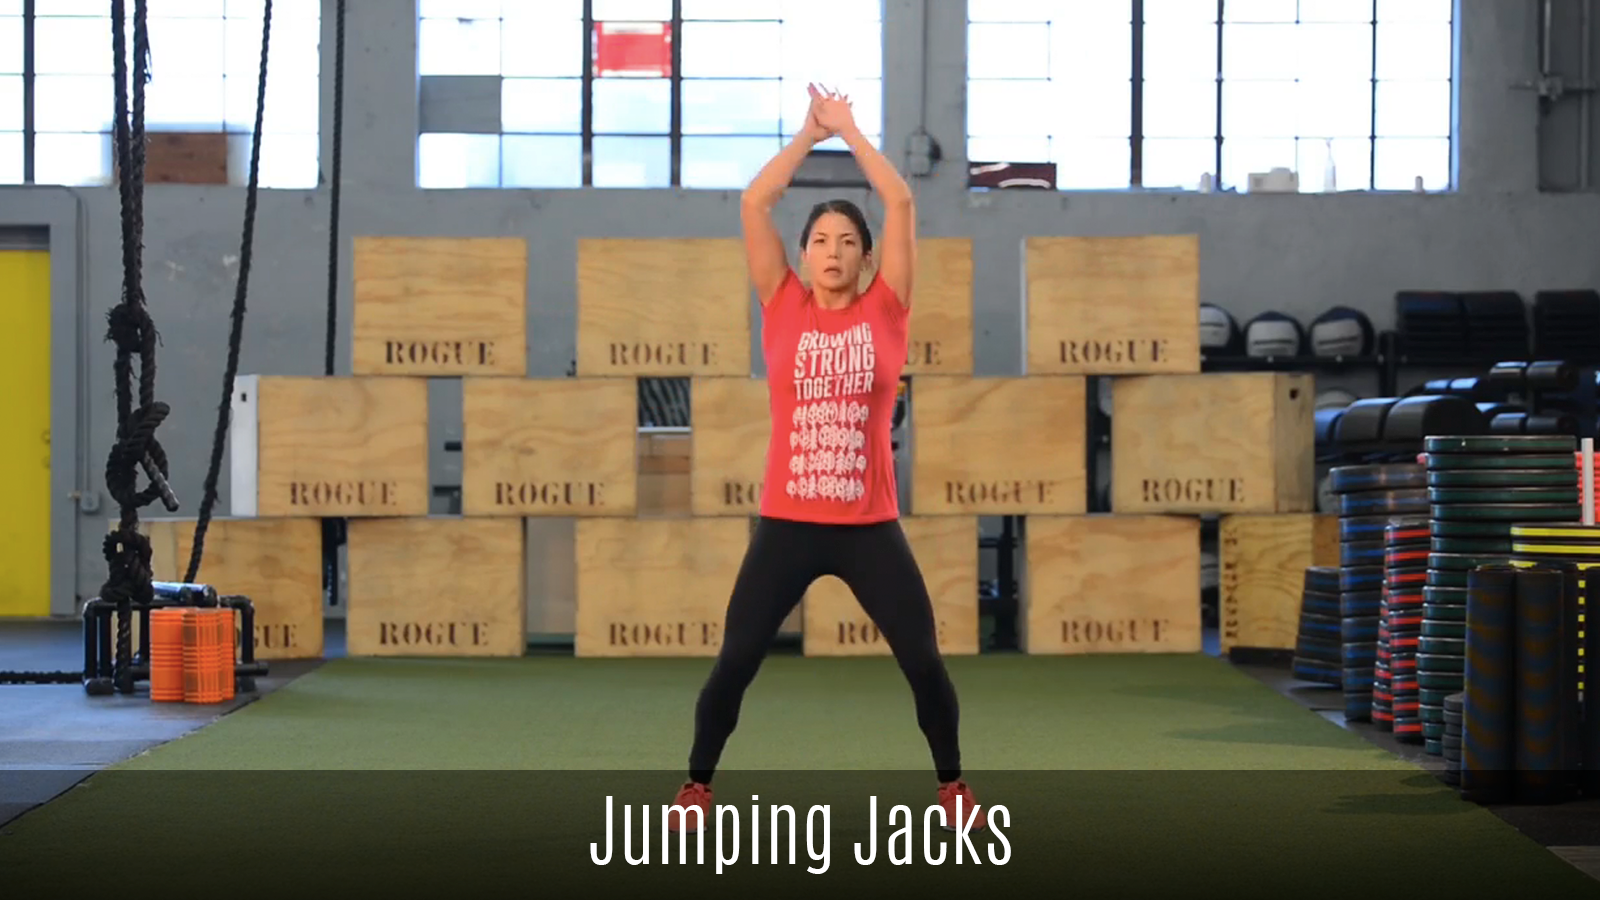 dynamic jumping jacks movement demo